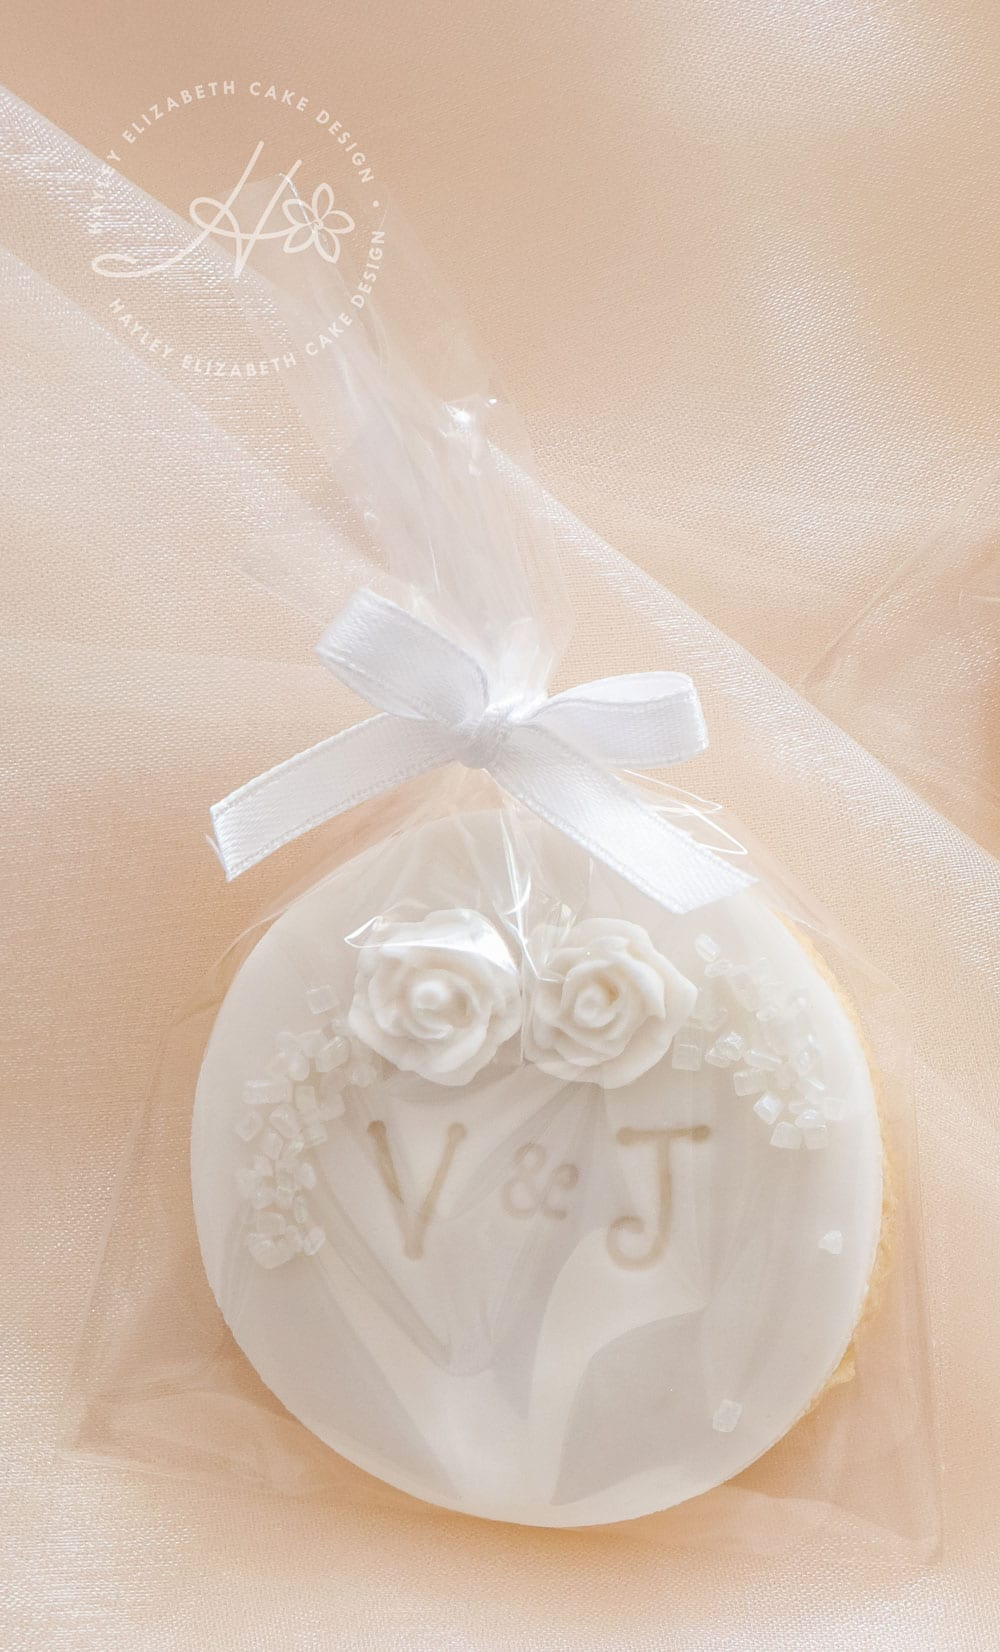 Gold and white dessert table, wedding favours, edible wedding favours, luxury wedding cake, cake pops, iced biscuits, mini cakes, silver and white wedding cake, dessert bar, white sequin wedding cake, sugar flowers, wedding cake inspiration